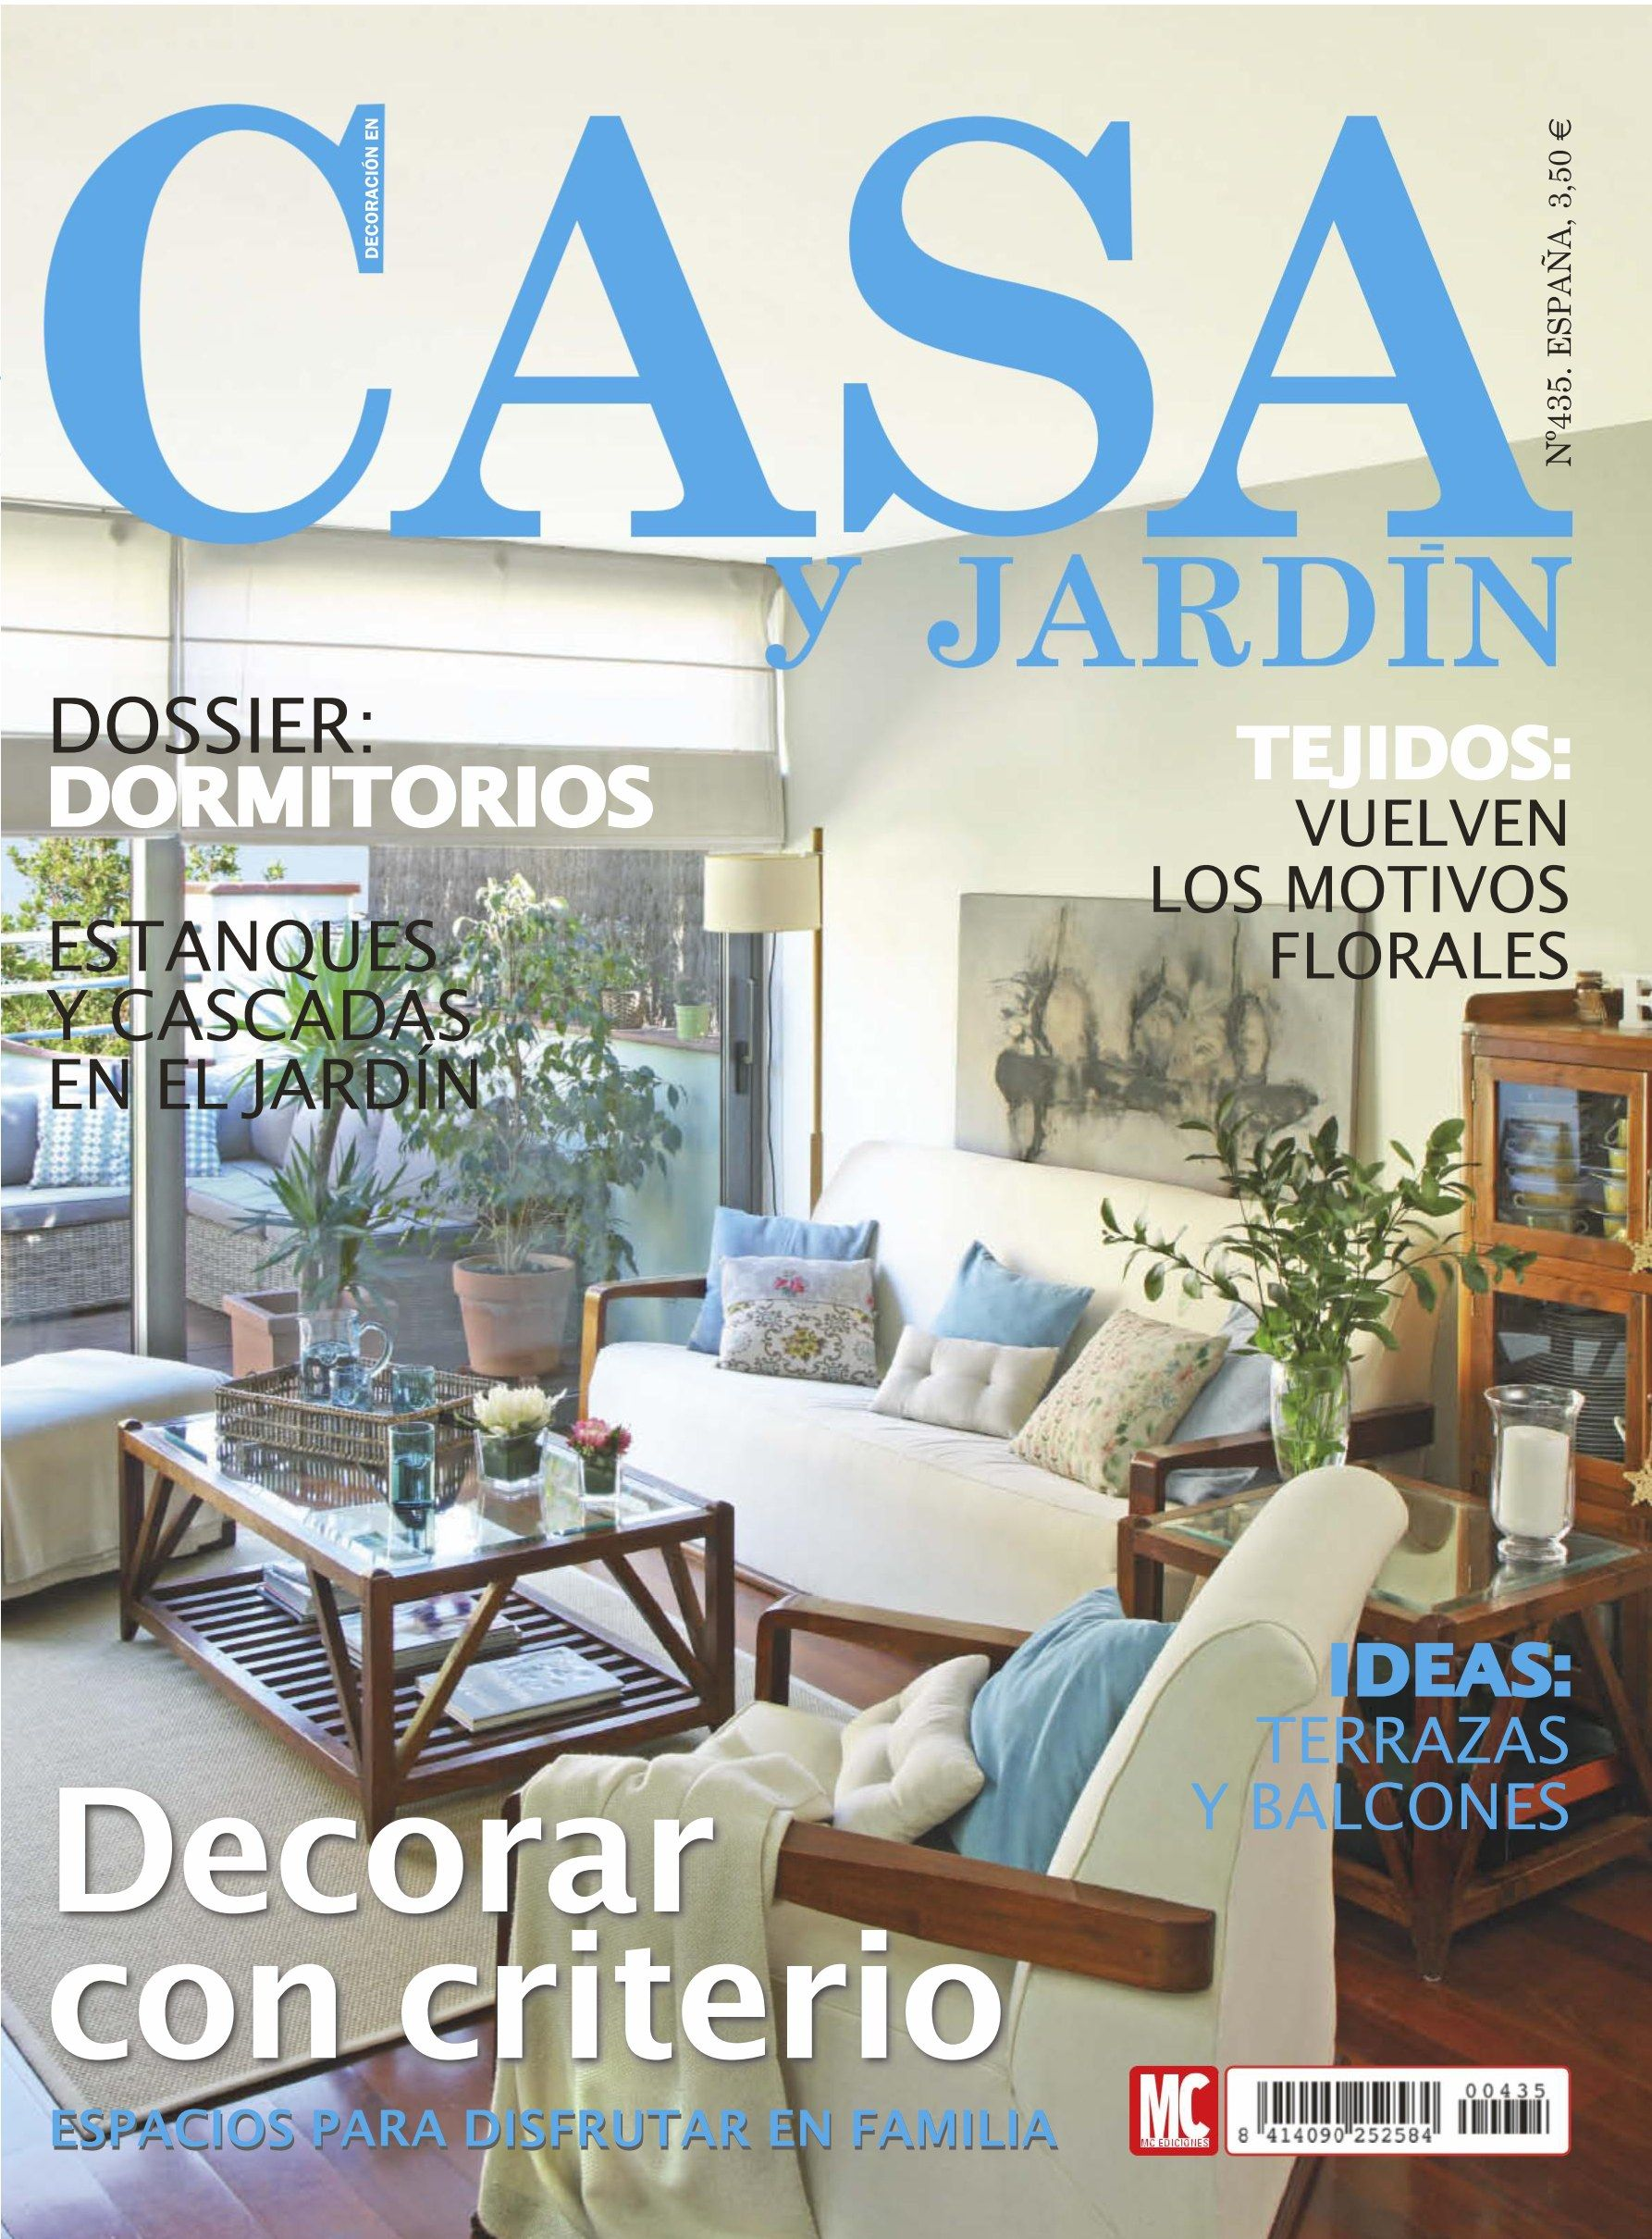 Revista casa y jardin 435 decorar con criterio for Casa jardin revista